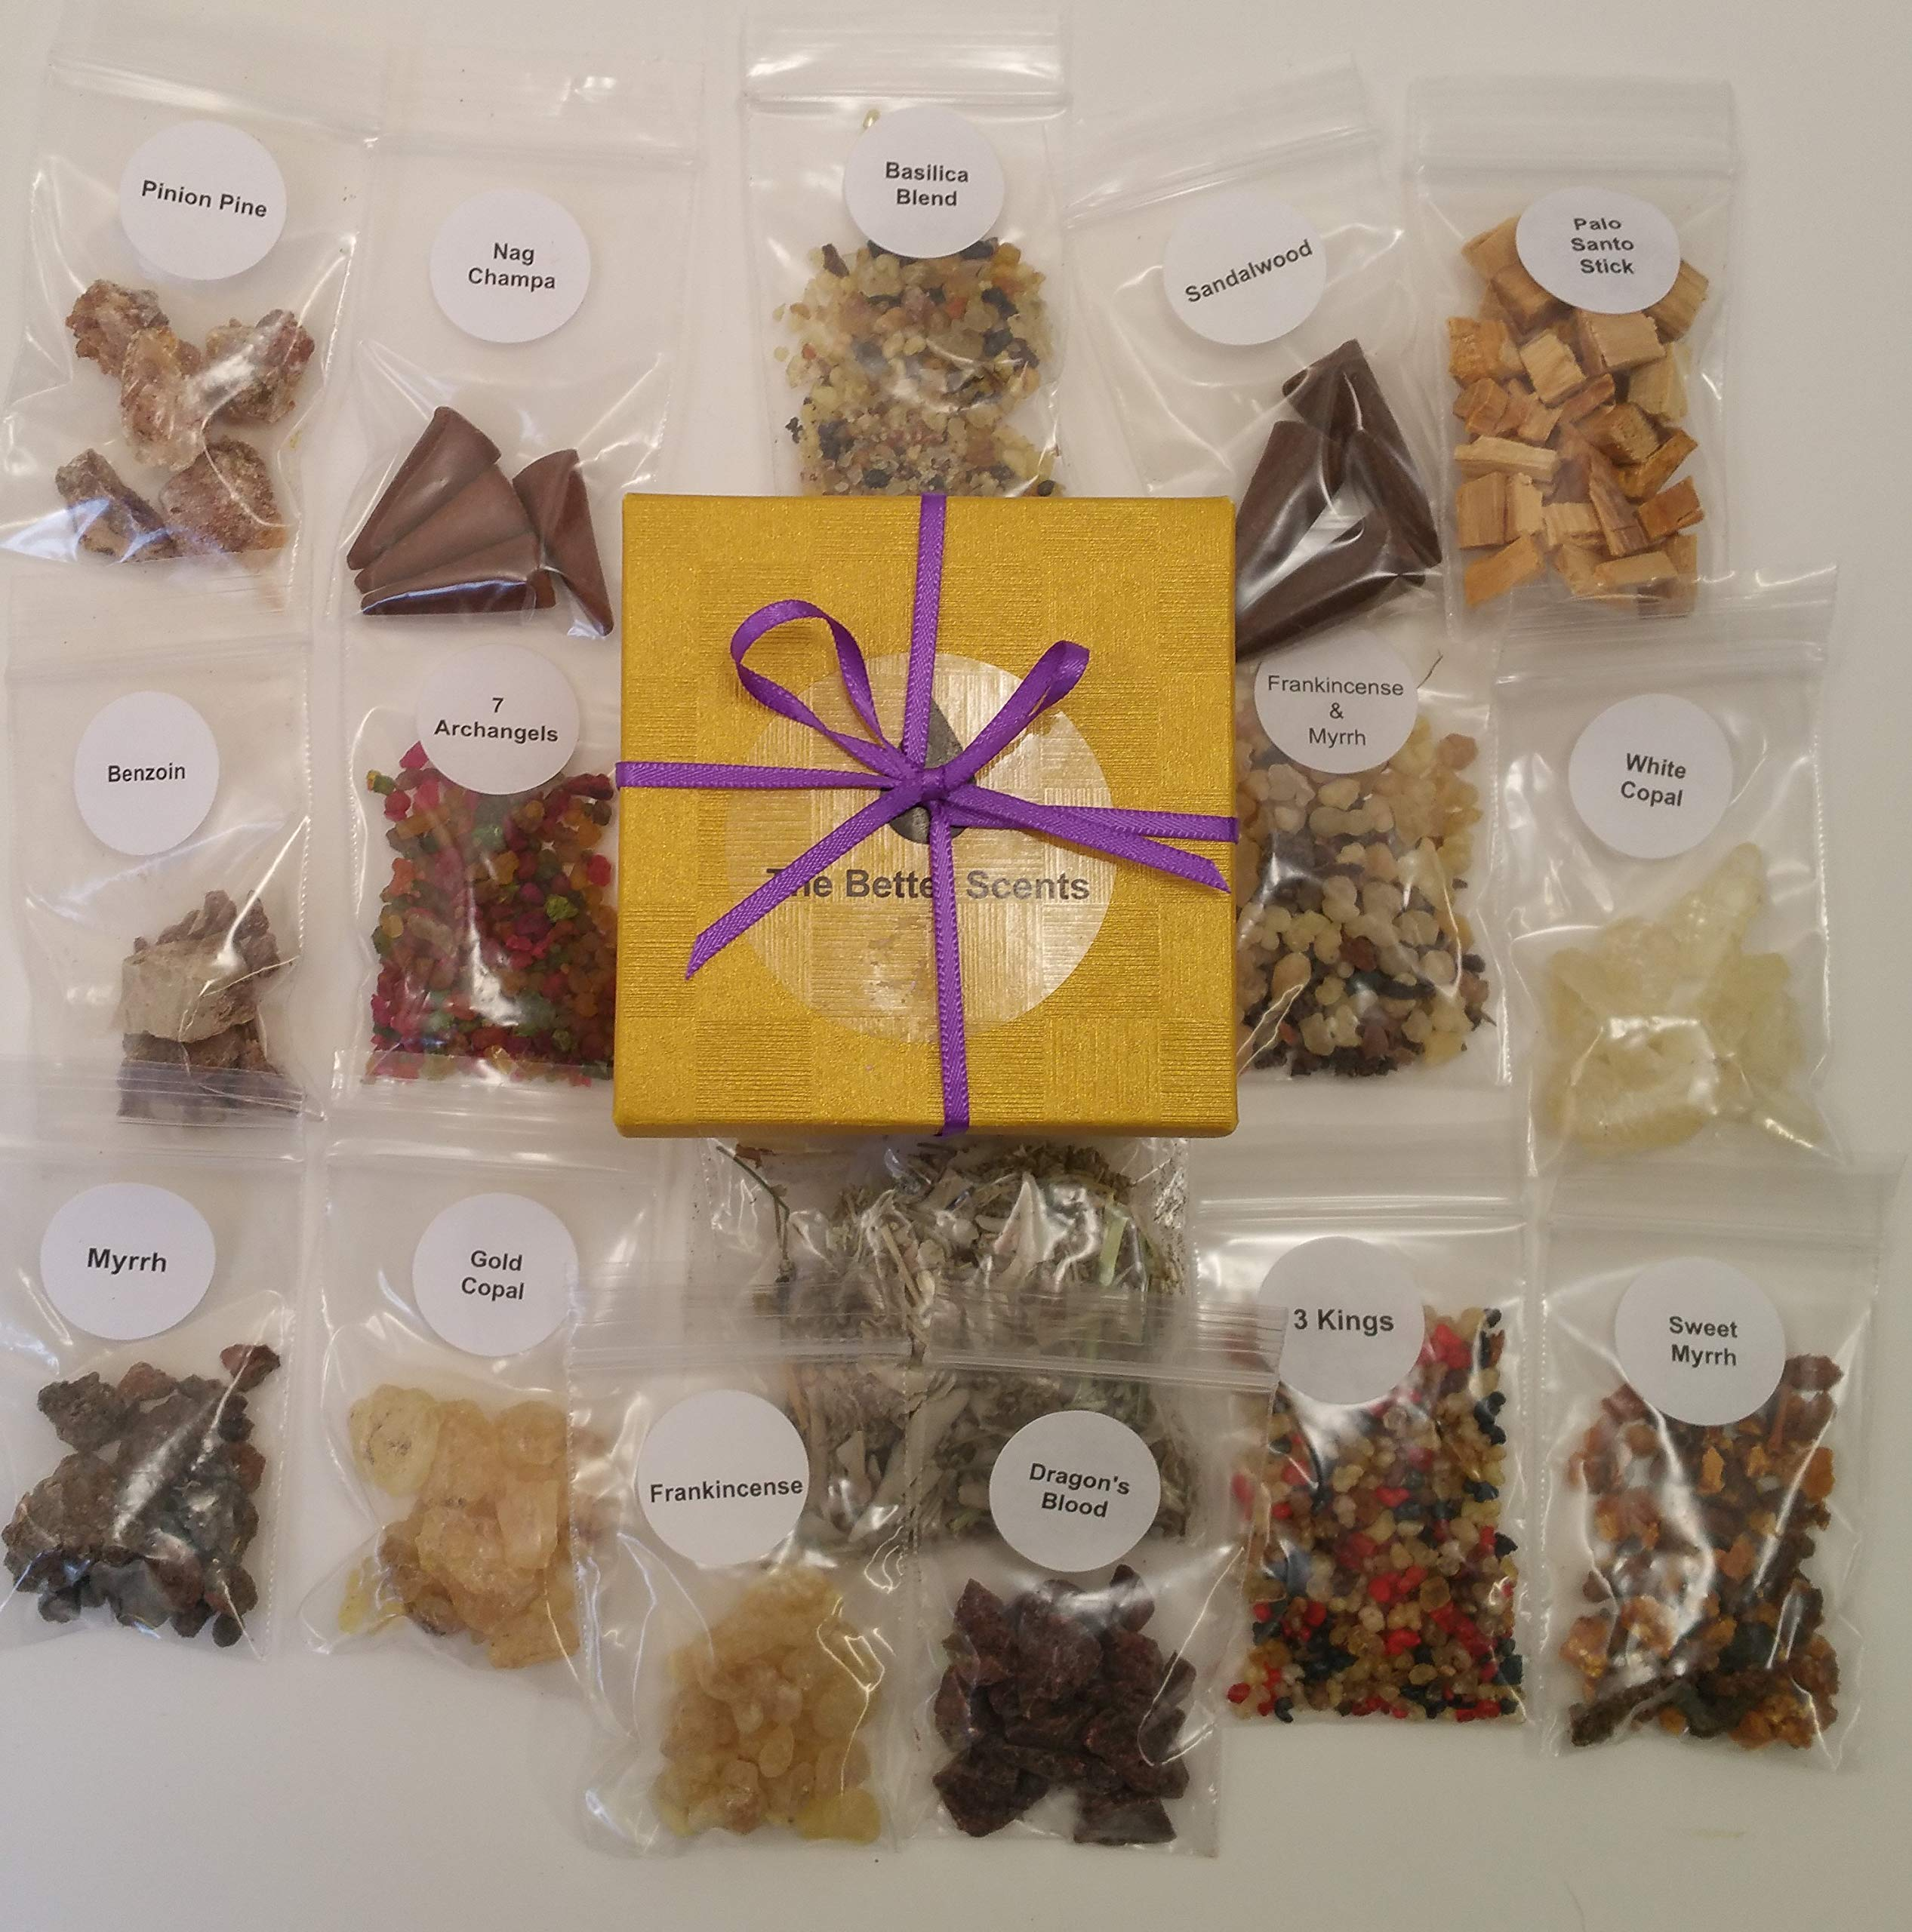 Resin Incense Variety Sampler Set- 16 Different scents 1/4 oz Samplers of resins- Herbs - Wood - Quality Made Cones. Beautifully Gift Boxed. All Natural Ingredients. The Best selections no fillers by The Better Scents (Image #1)